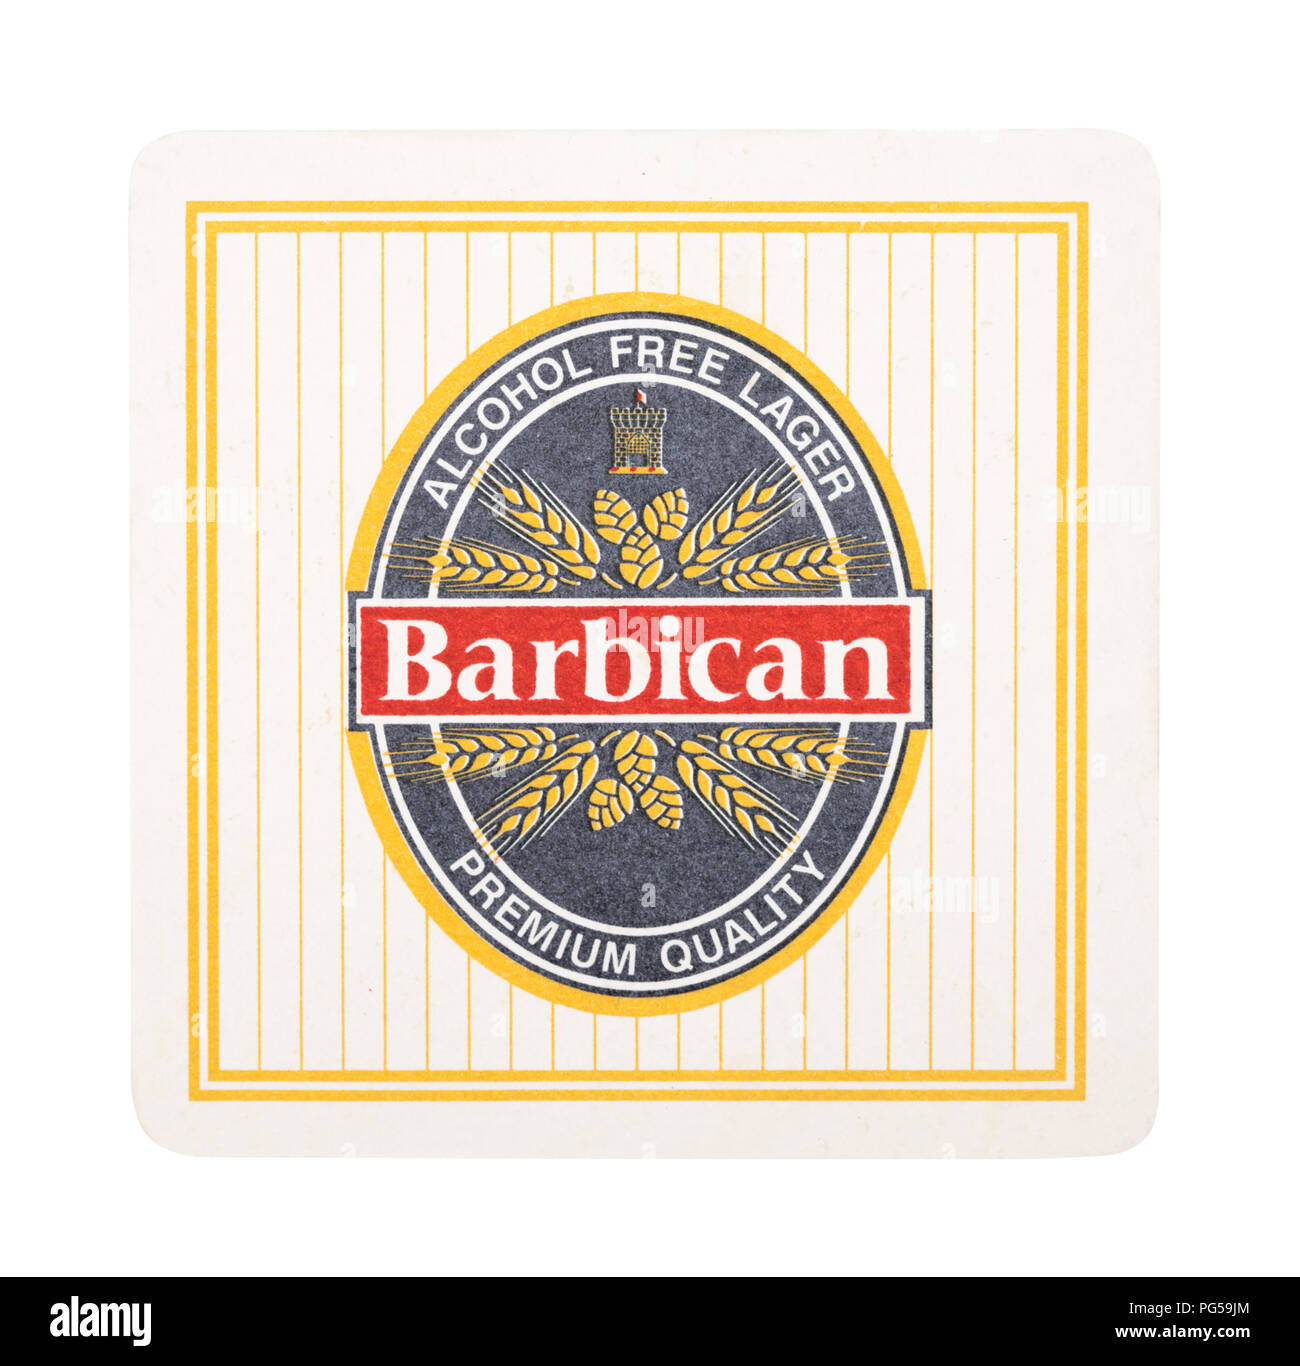 LONDON, UK - AUGUST 22, 2018: Barbican lager paper beer beermat coaster isolated on white background. - Stock Image